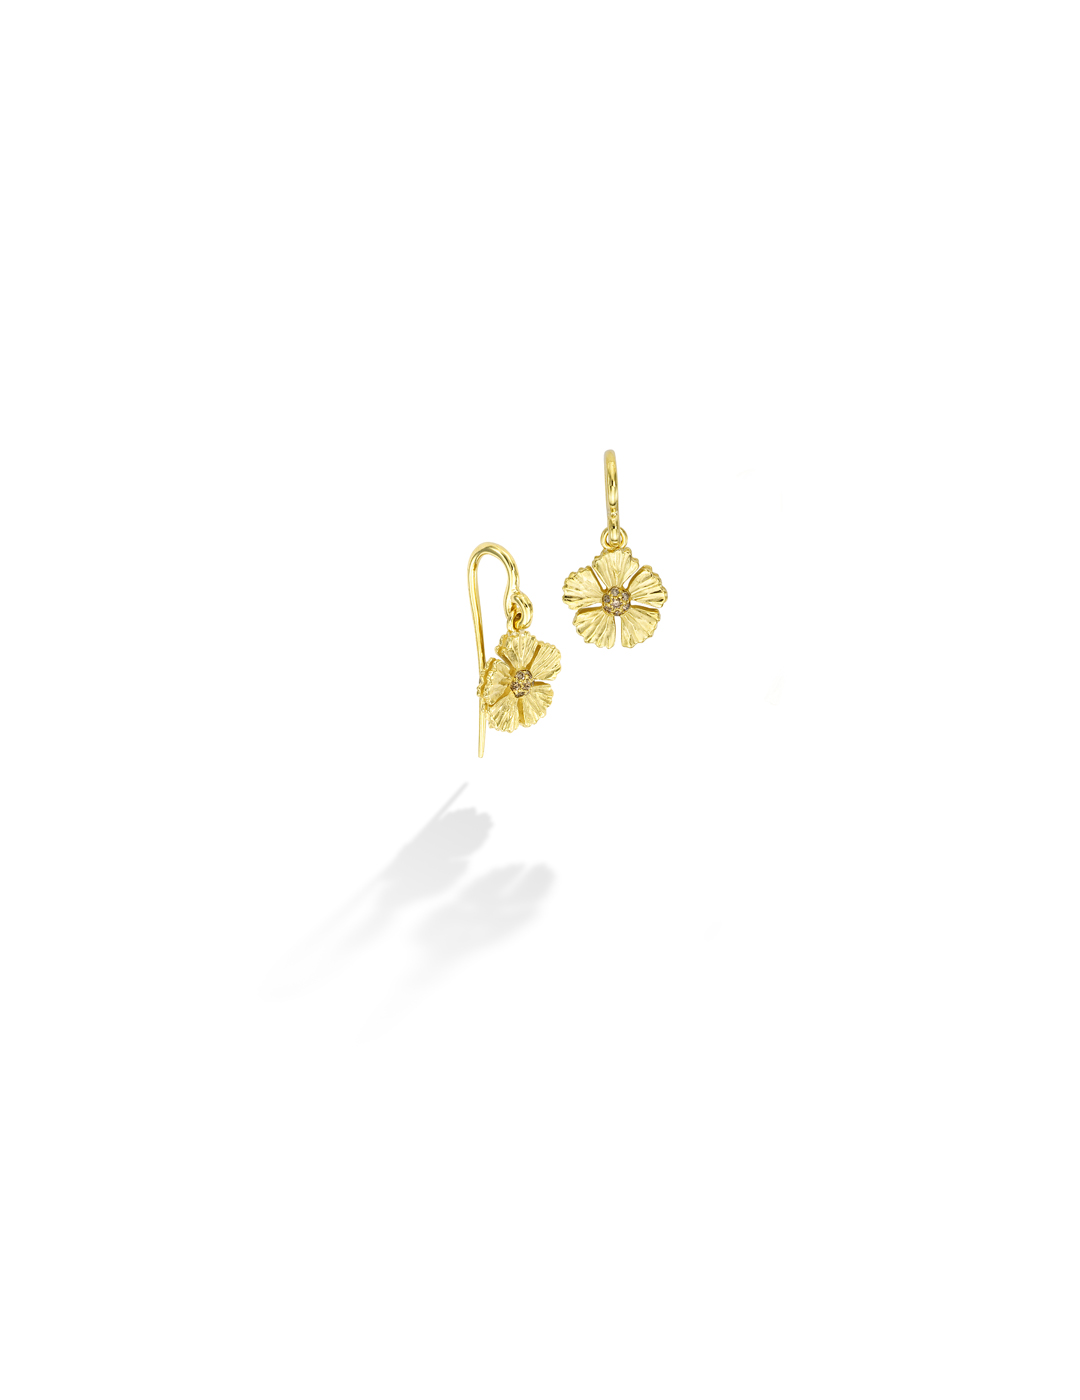 mish_products_earrings_Strawberry-MED FW-BrwnDiam-ER-1